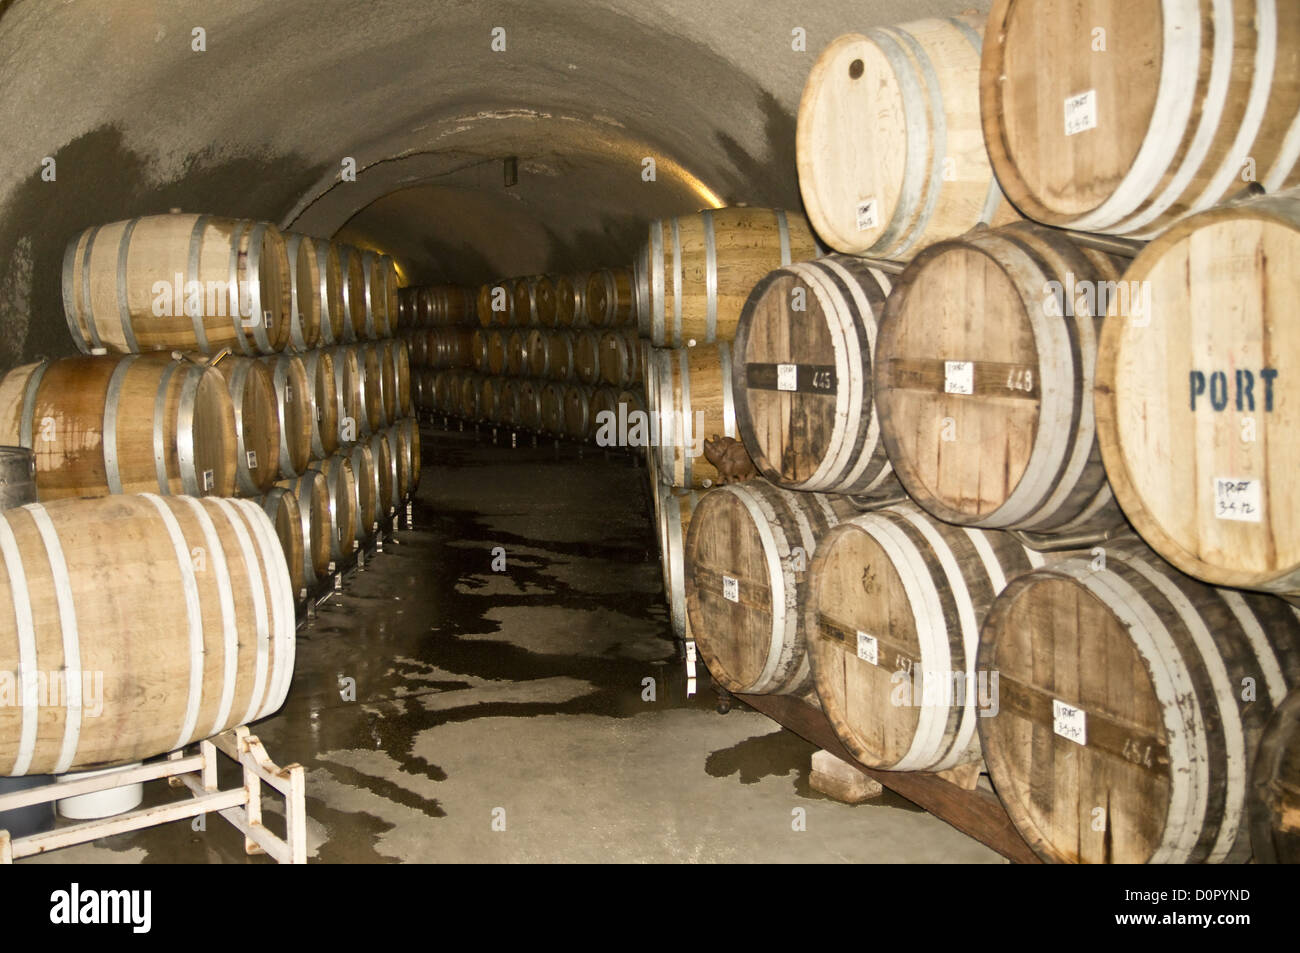 Wine Barrels at a Winery Celler - Stock Image